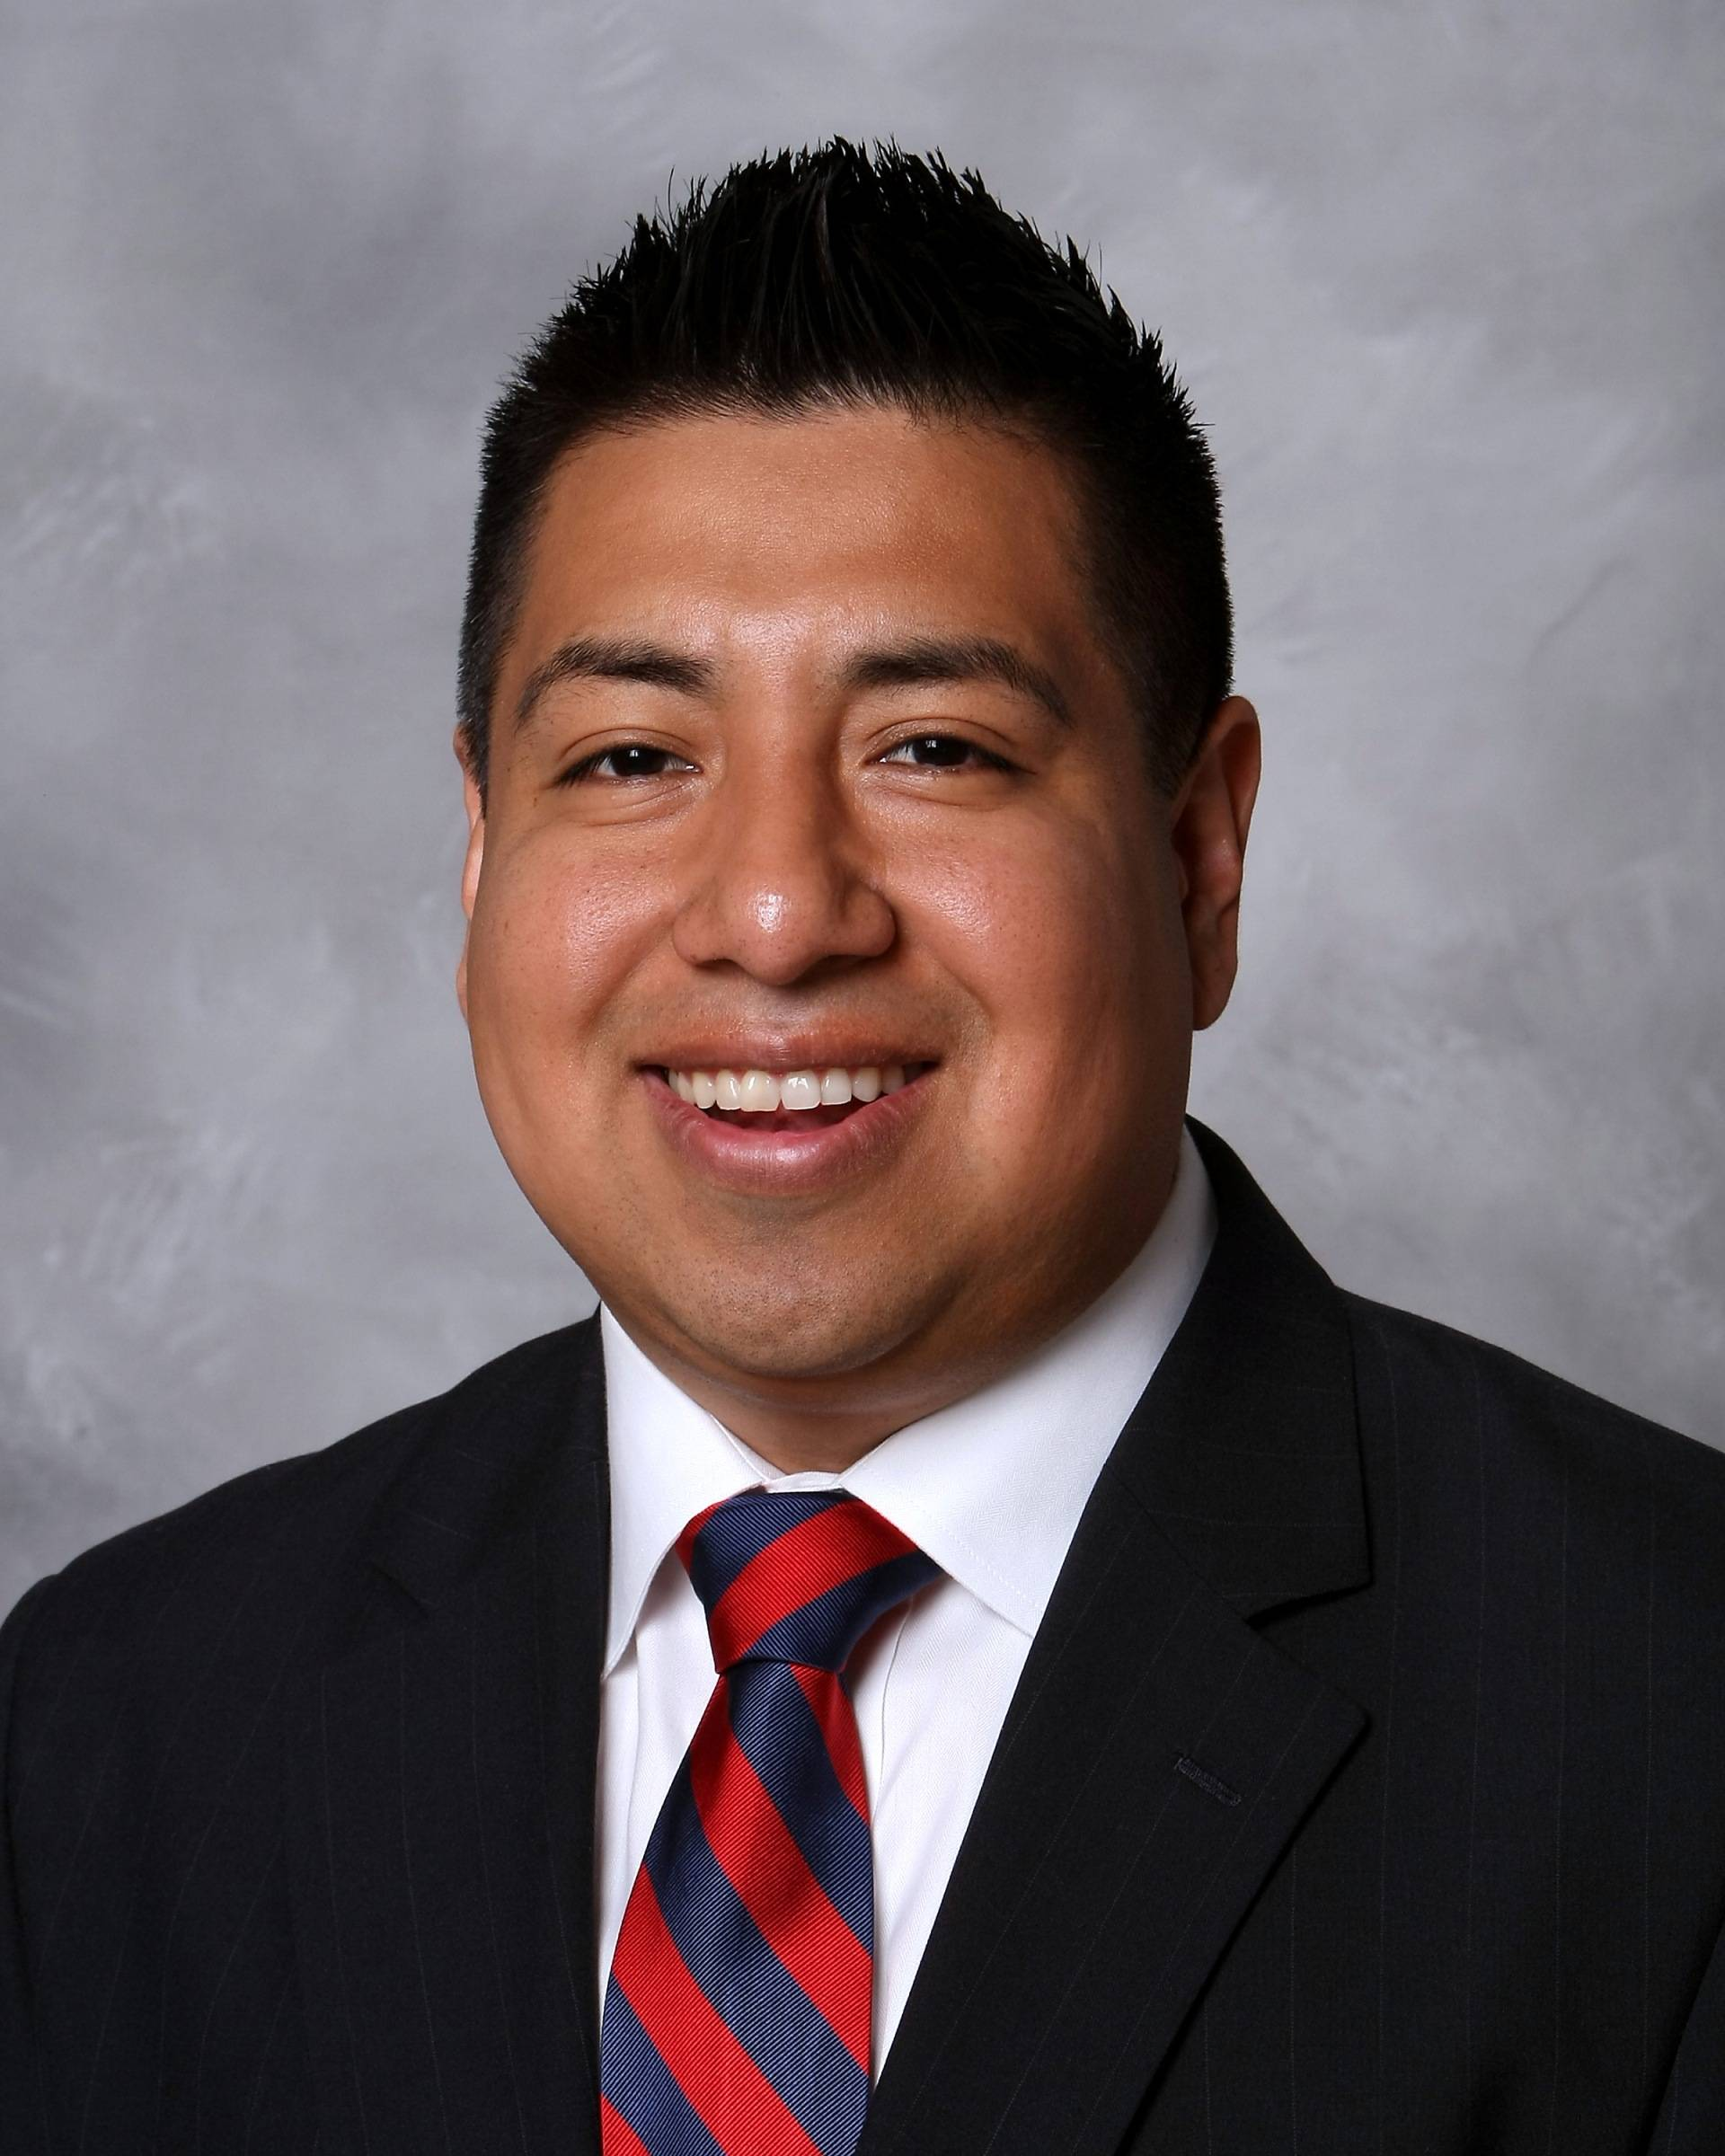 Rene Hernandez, running for Lake County board District 16